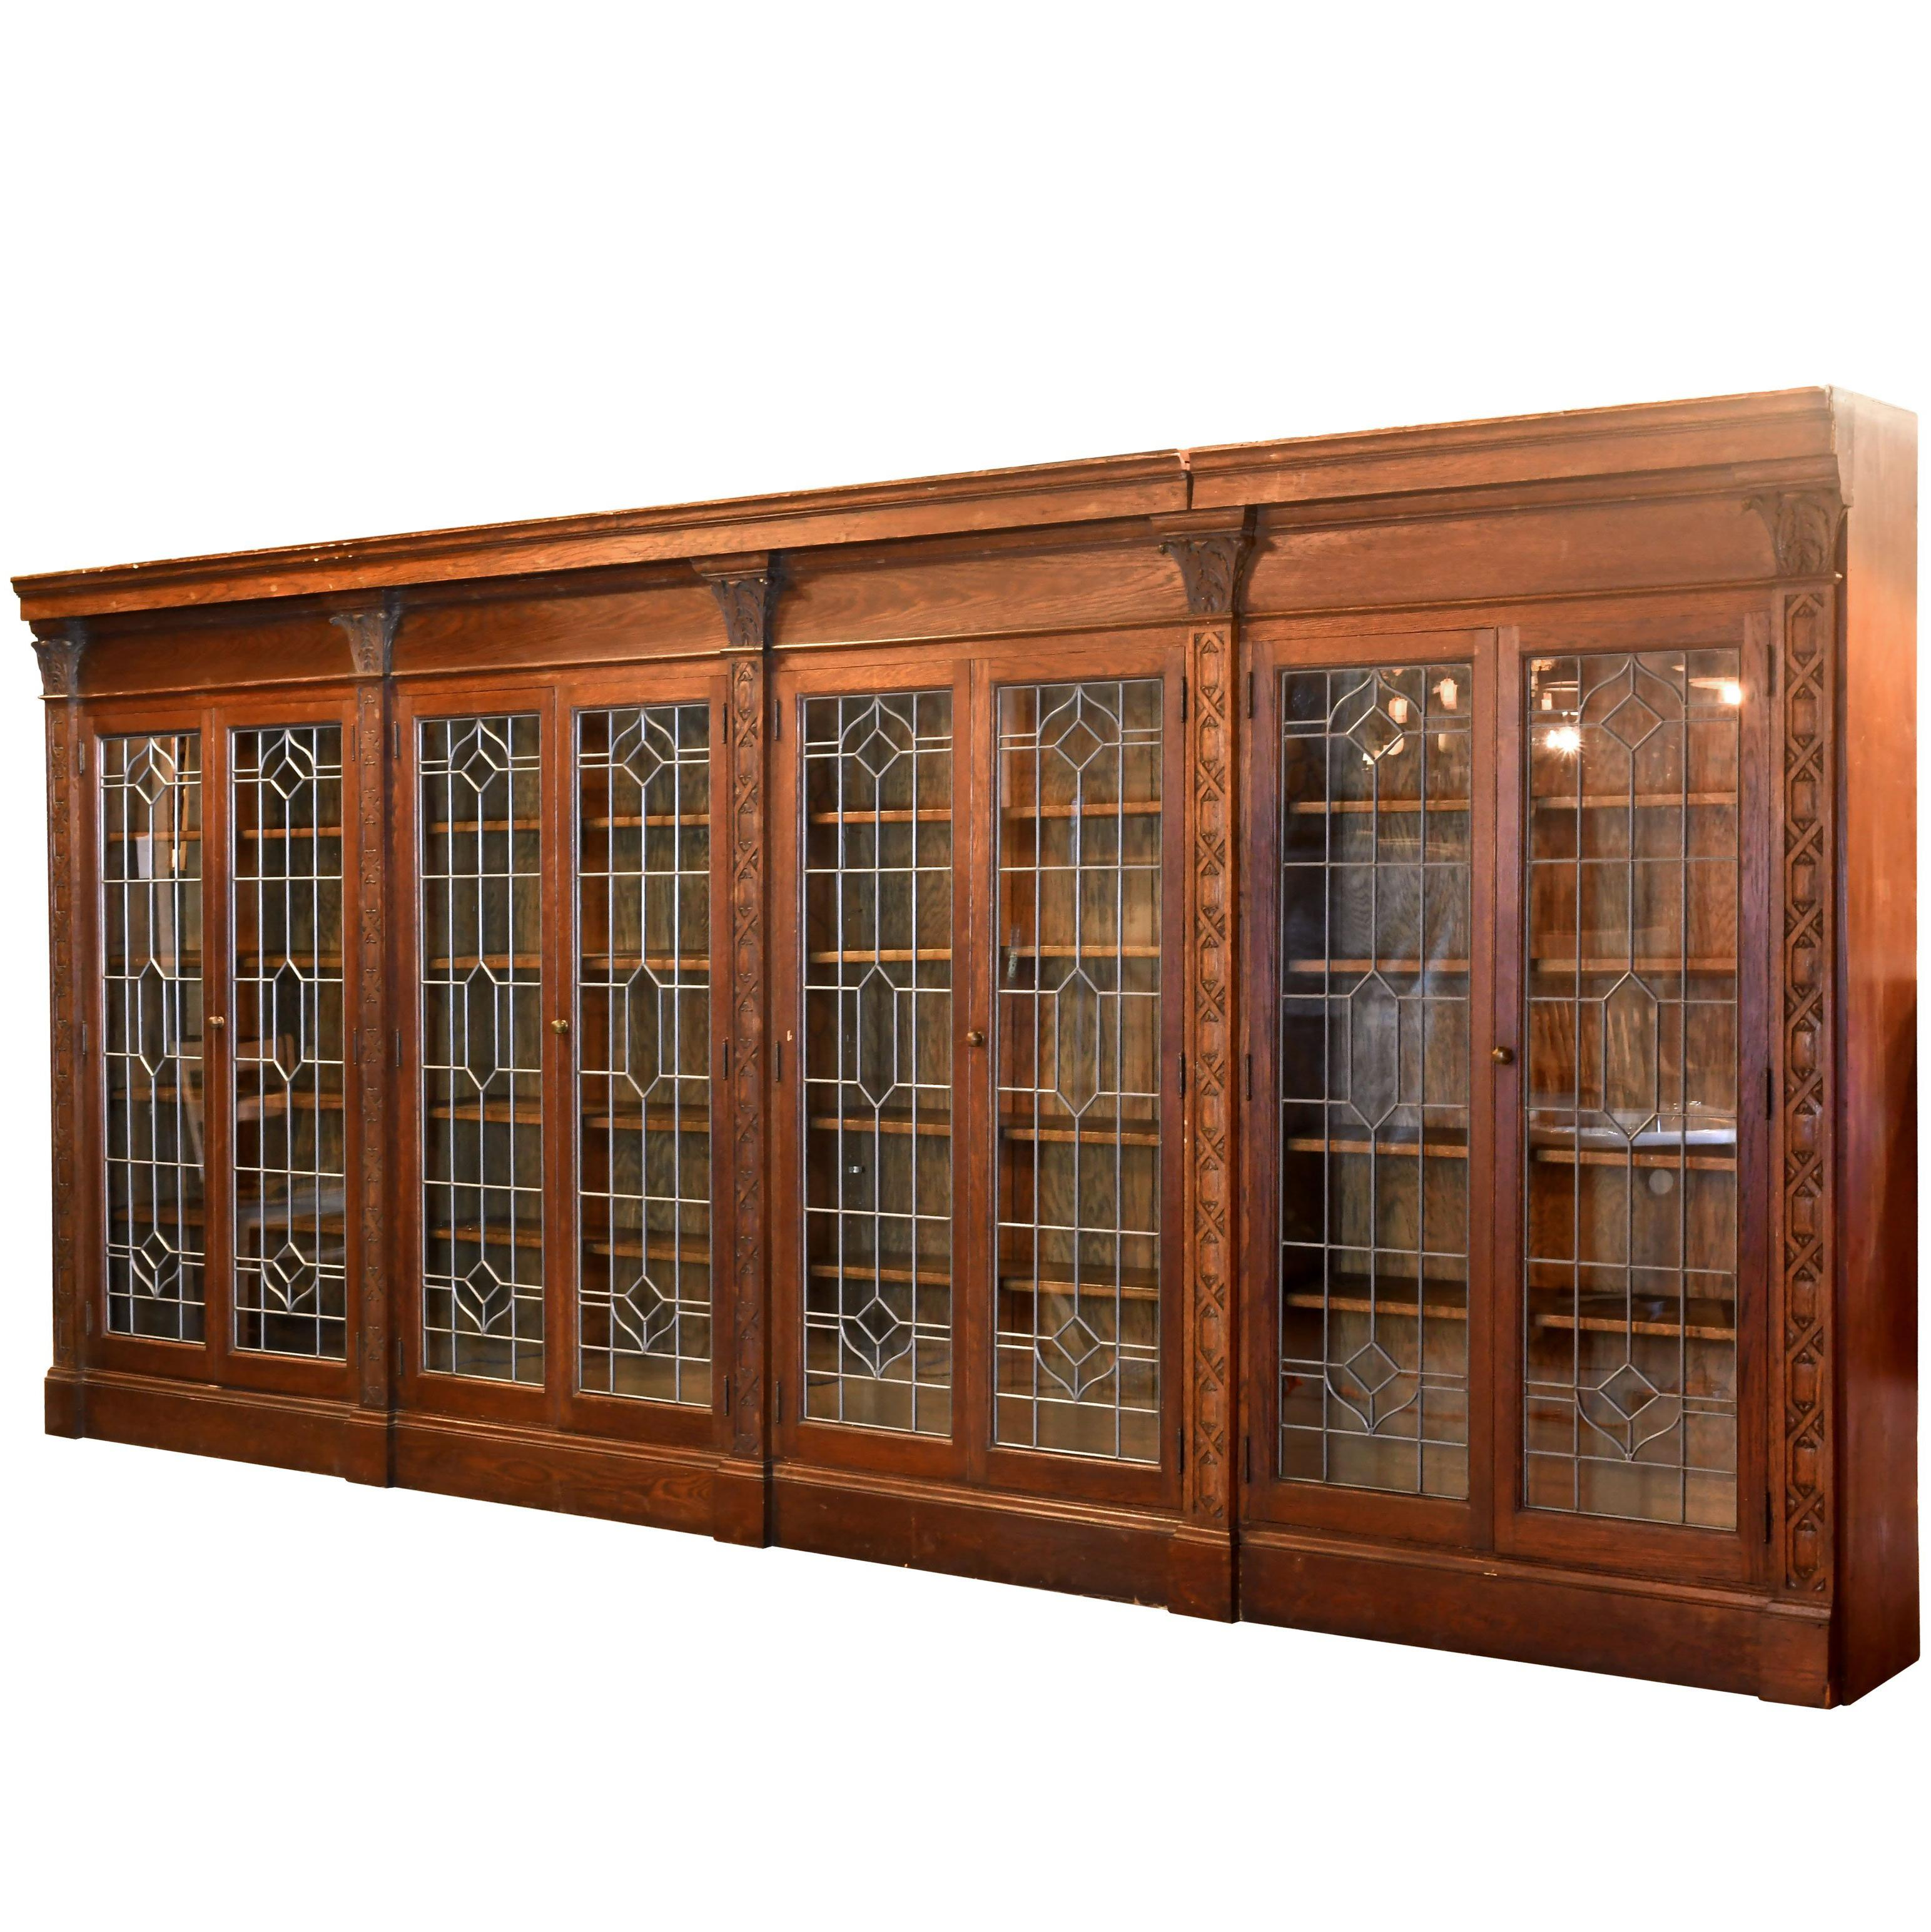 Ornately Carved Oak Bookcase With Leaded Glass Doors At 1stdibs